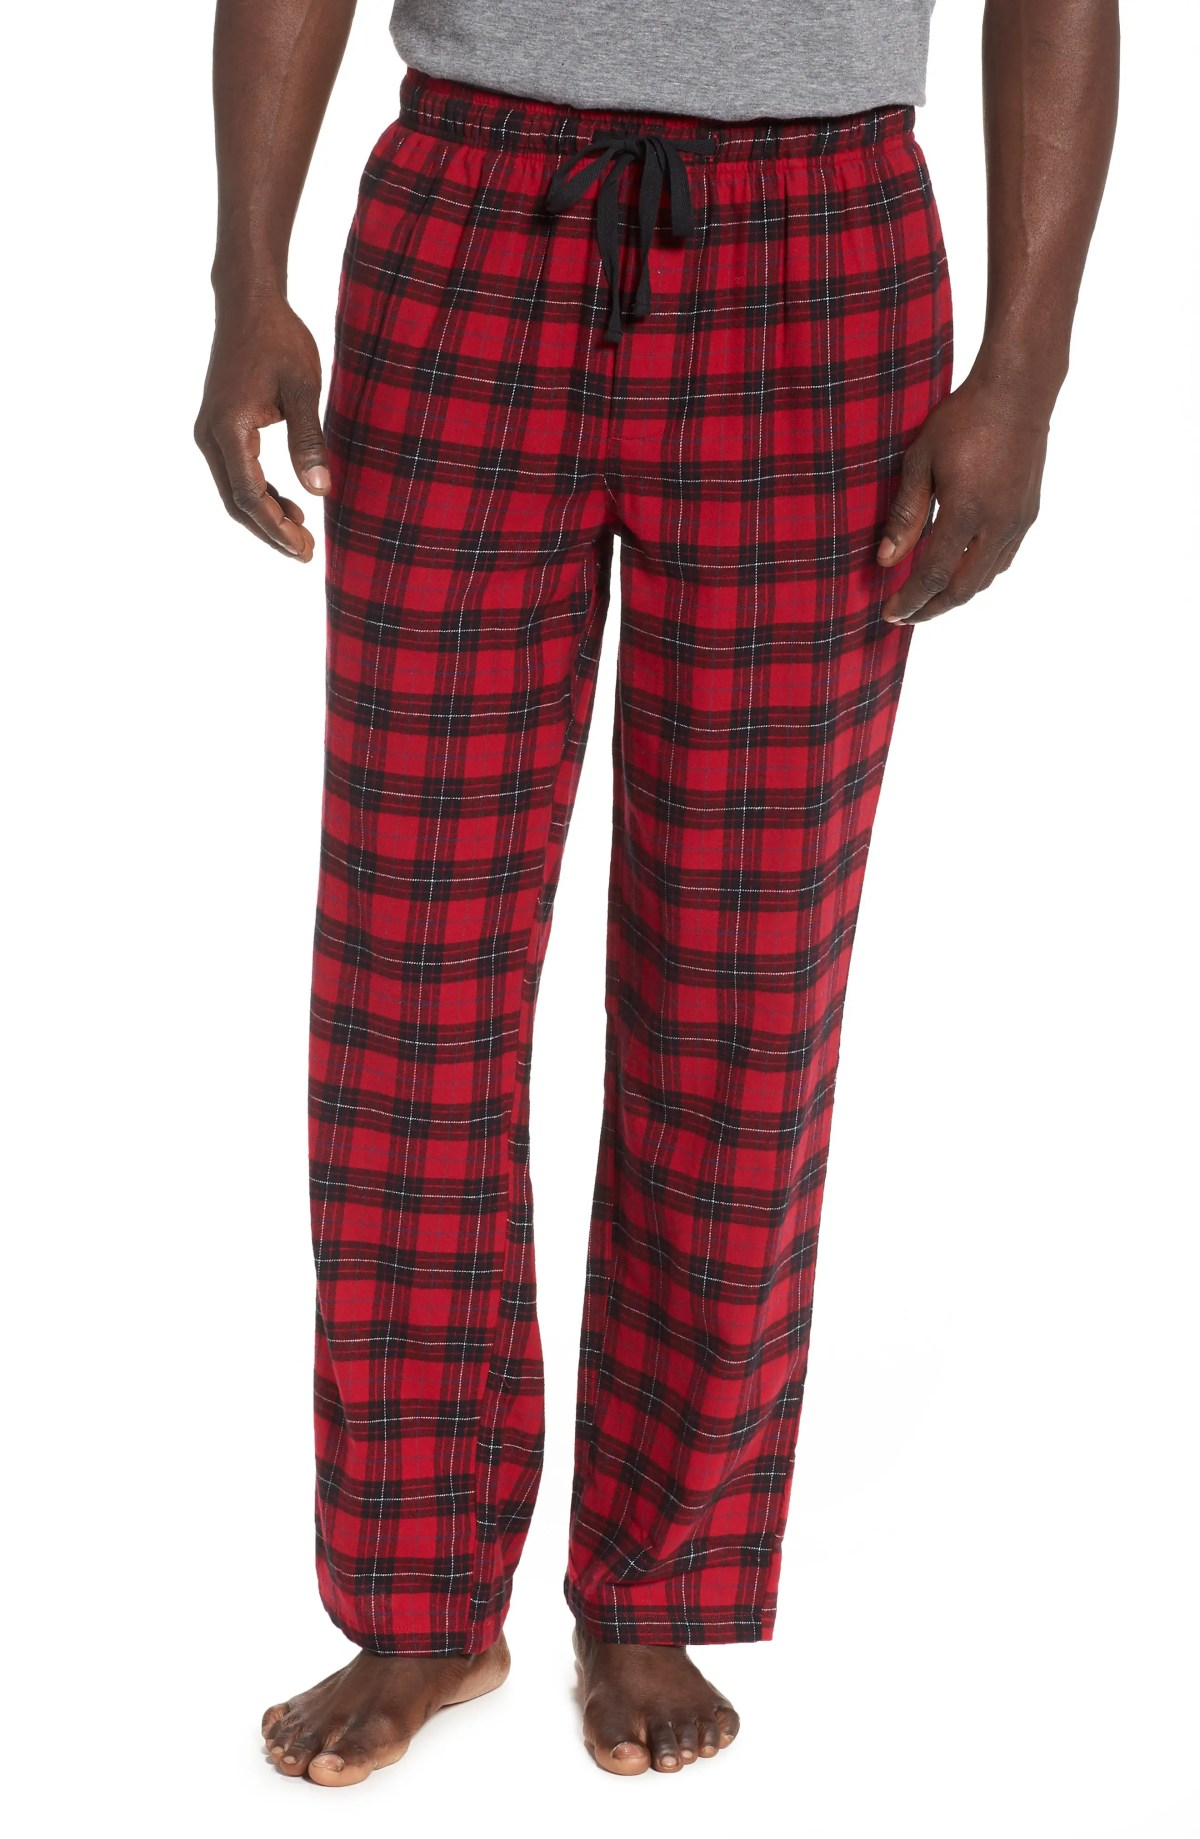 NORDSTROM MEN'S SHOP Flannel Pajama Pants, Main, color, RED BLACK WILLIAM TARTAN